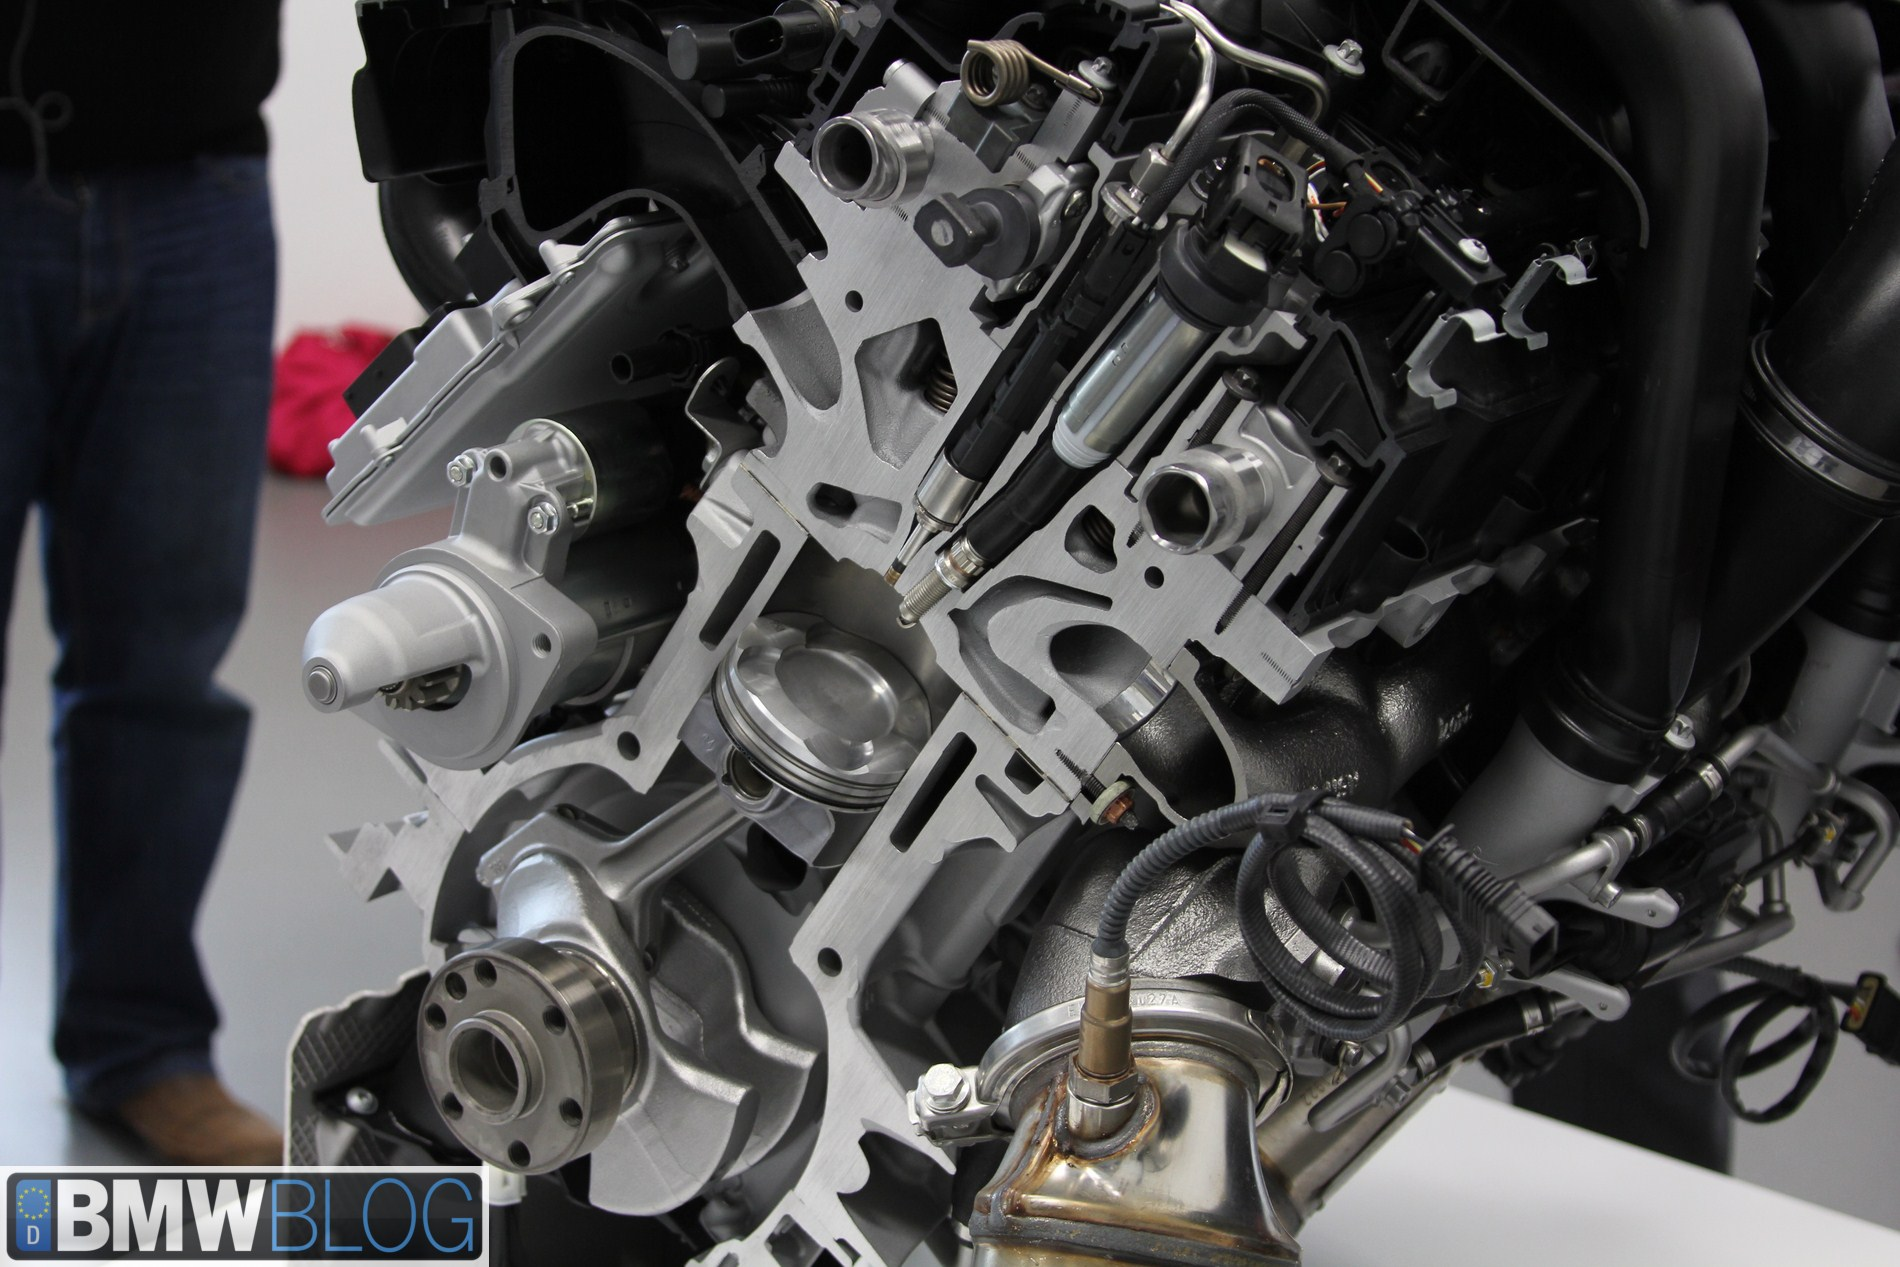 2014 Bmw M3 Engine Diagram Not Lossing Wiring 2001 325i Component Library Rh 77 Codingcommunity De M54 Electrical